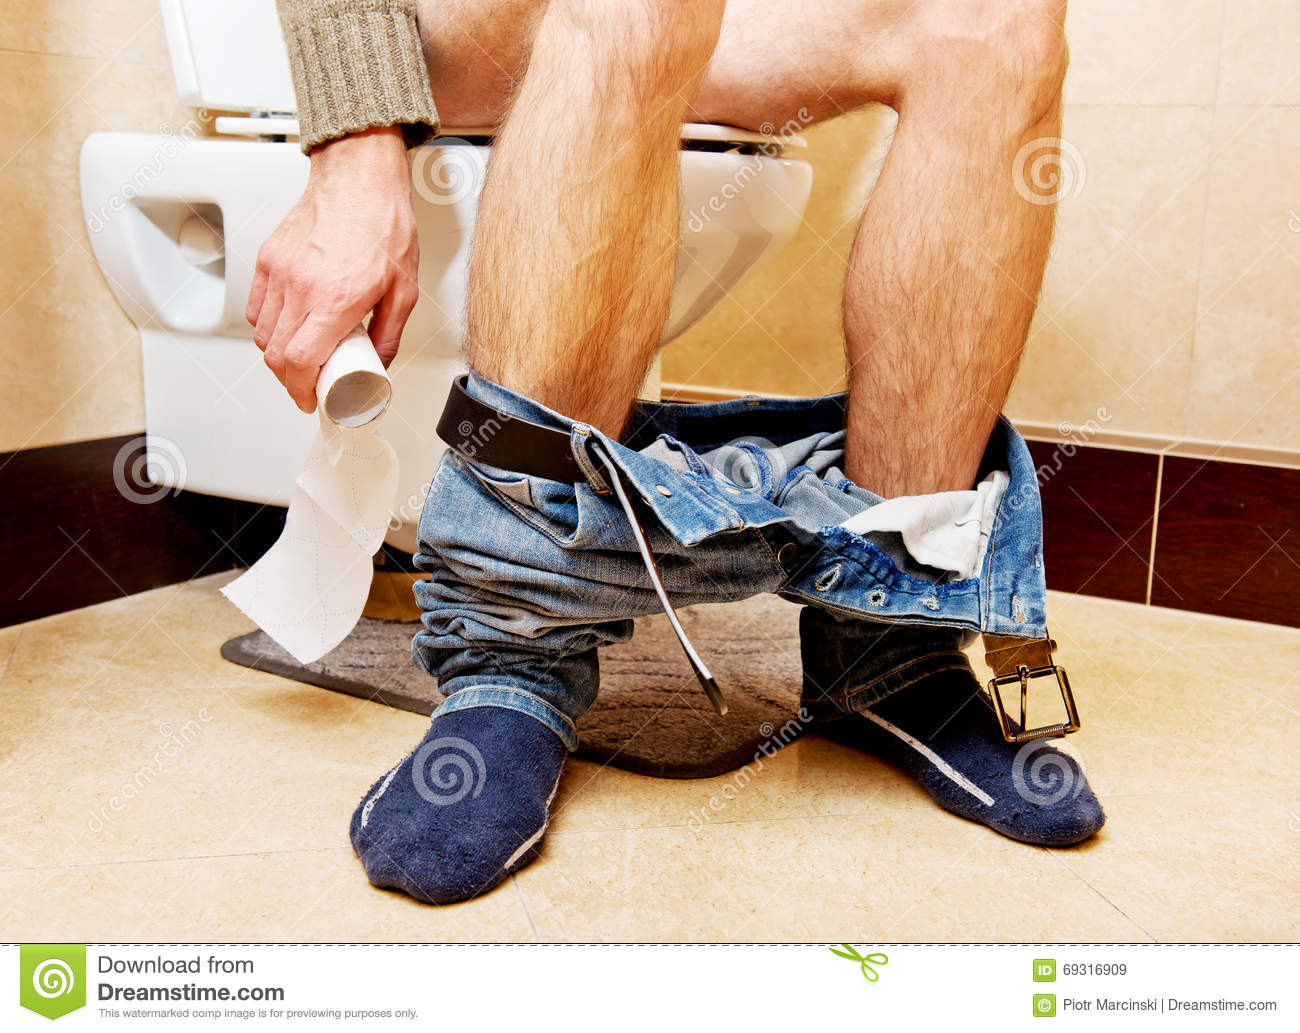 Man Pants Down Sitting Toilet on cartoon person falling down